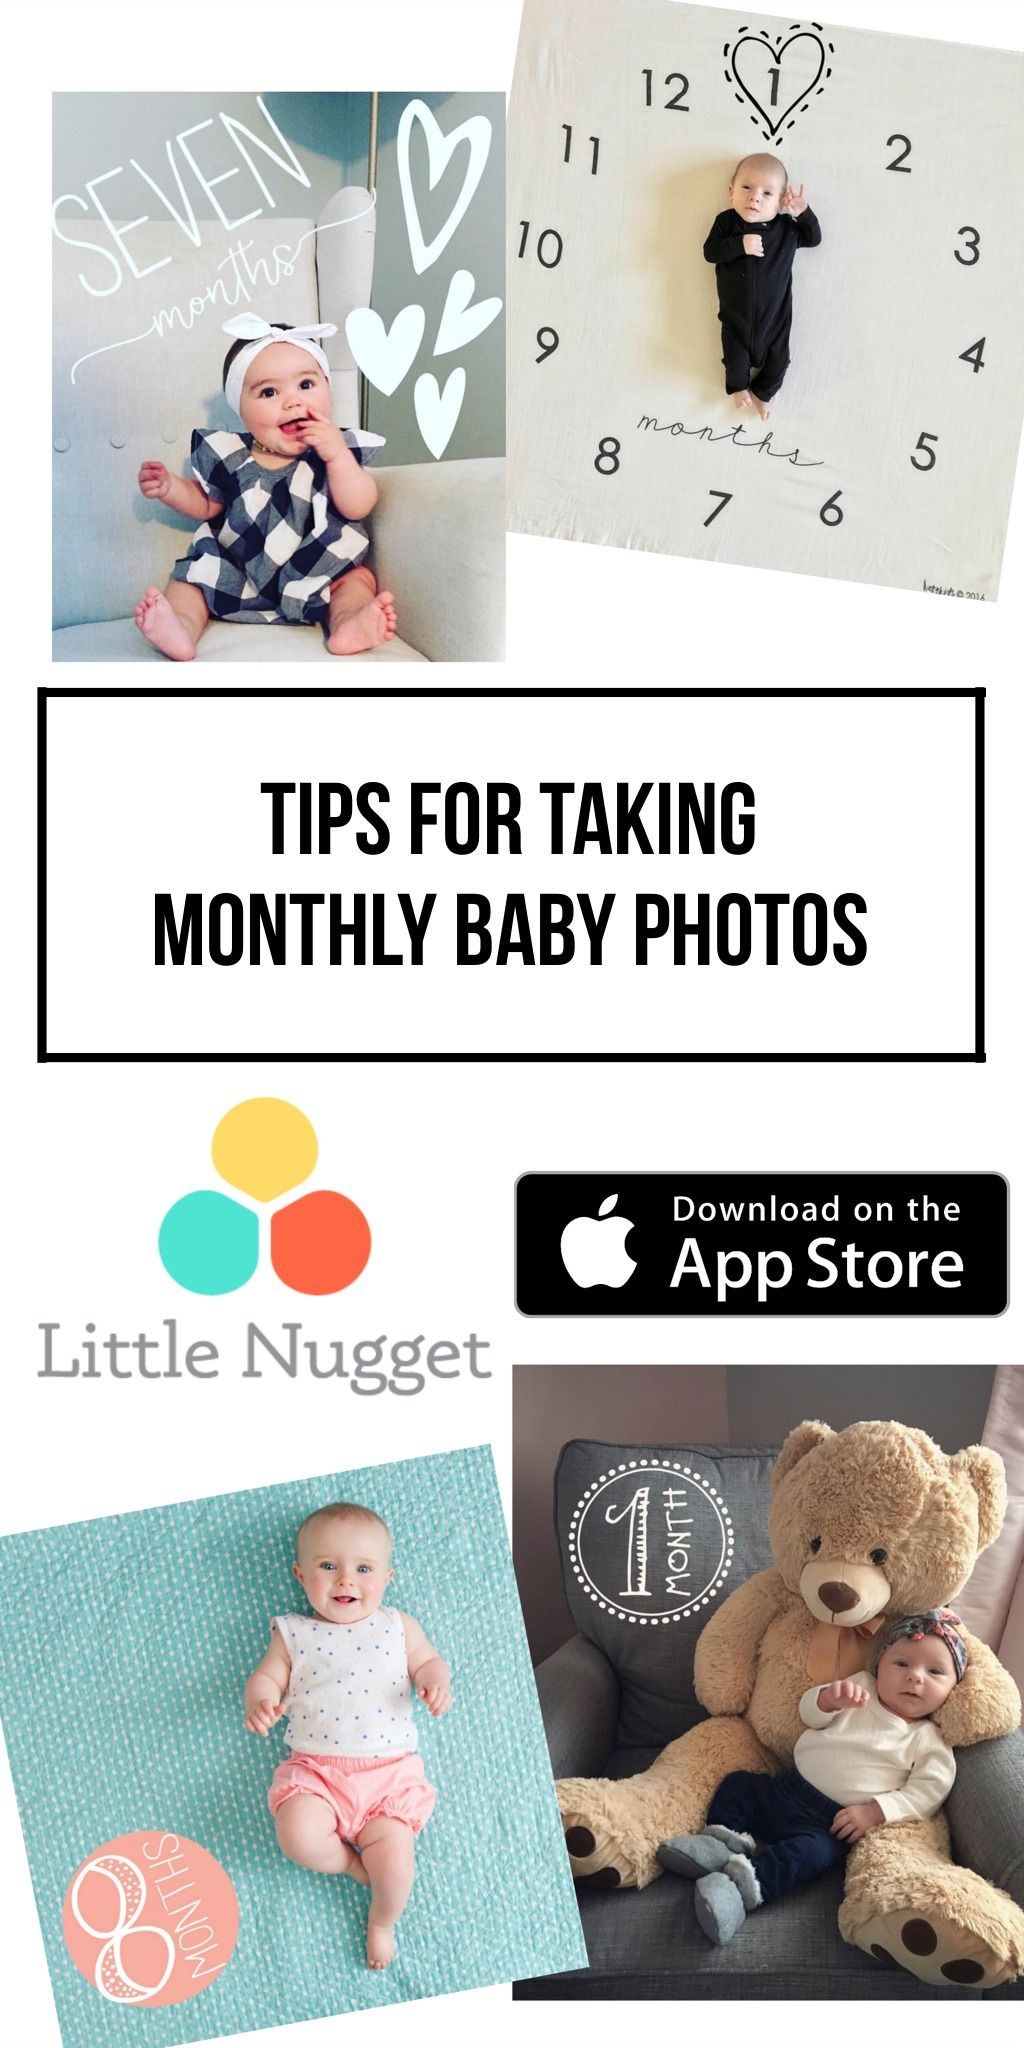 Tips for taking monthly baby photos We love seeing your babies